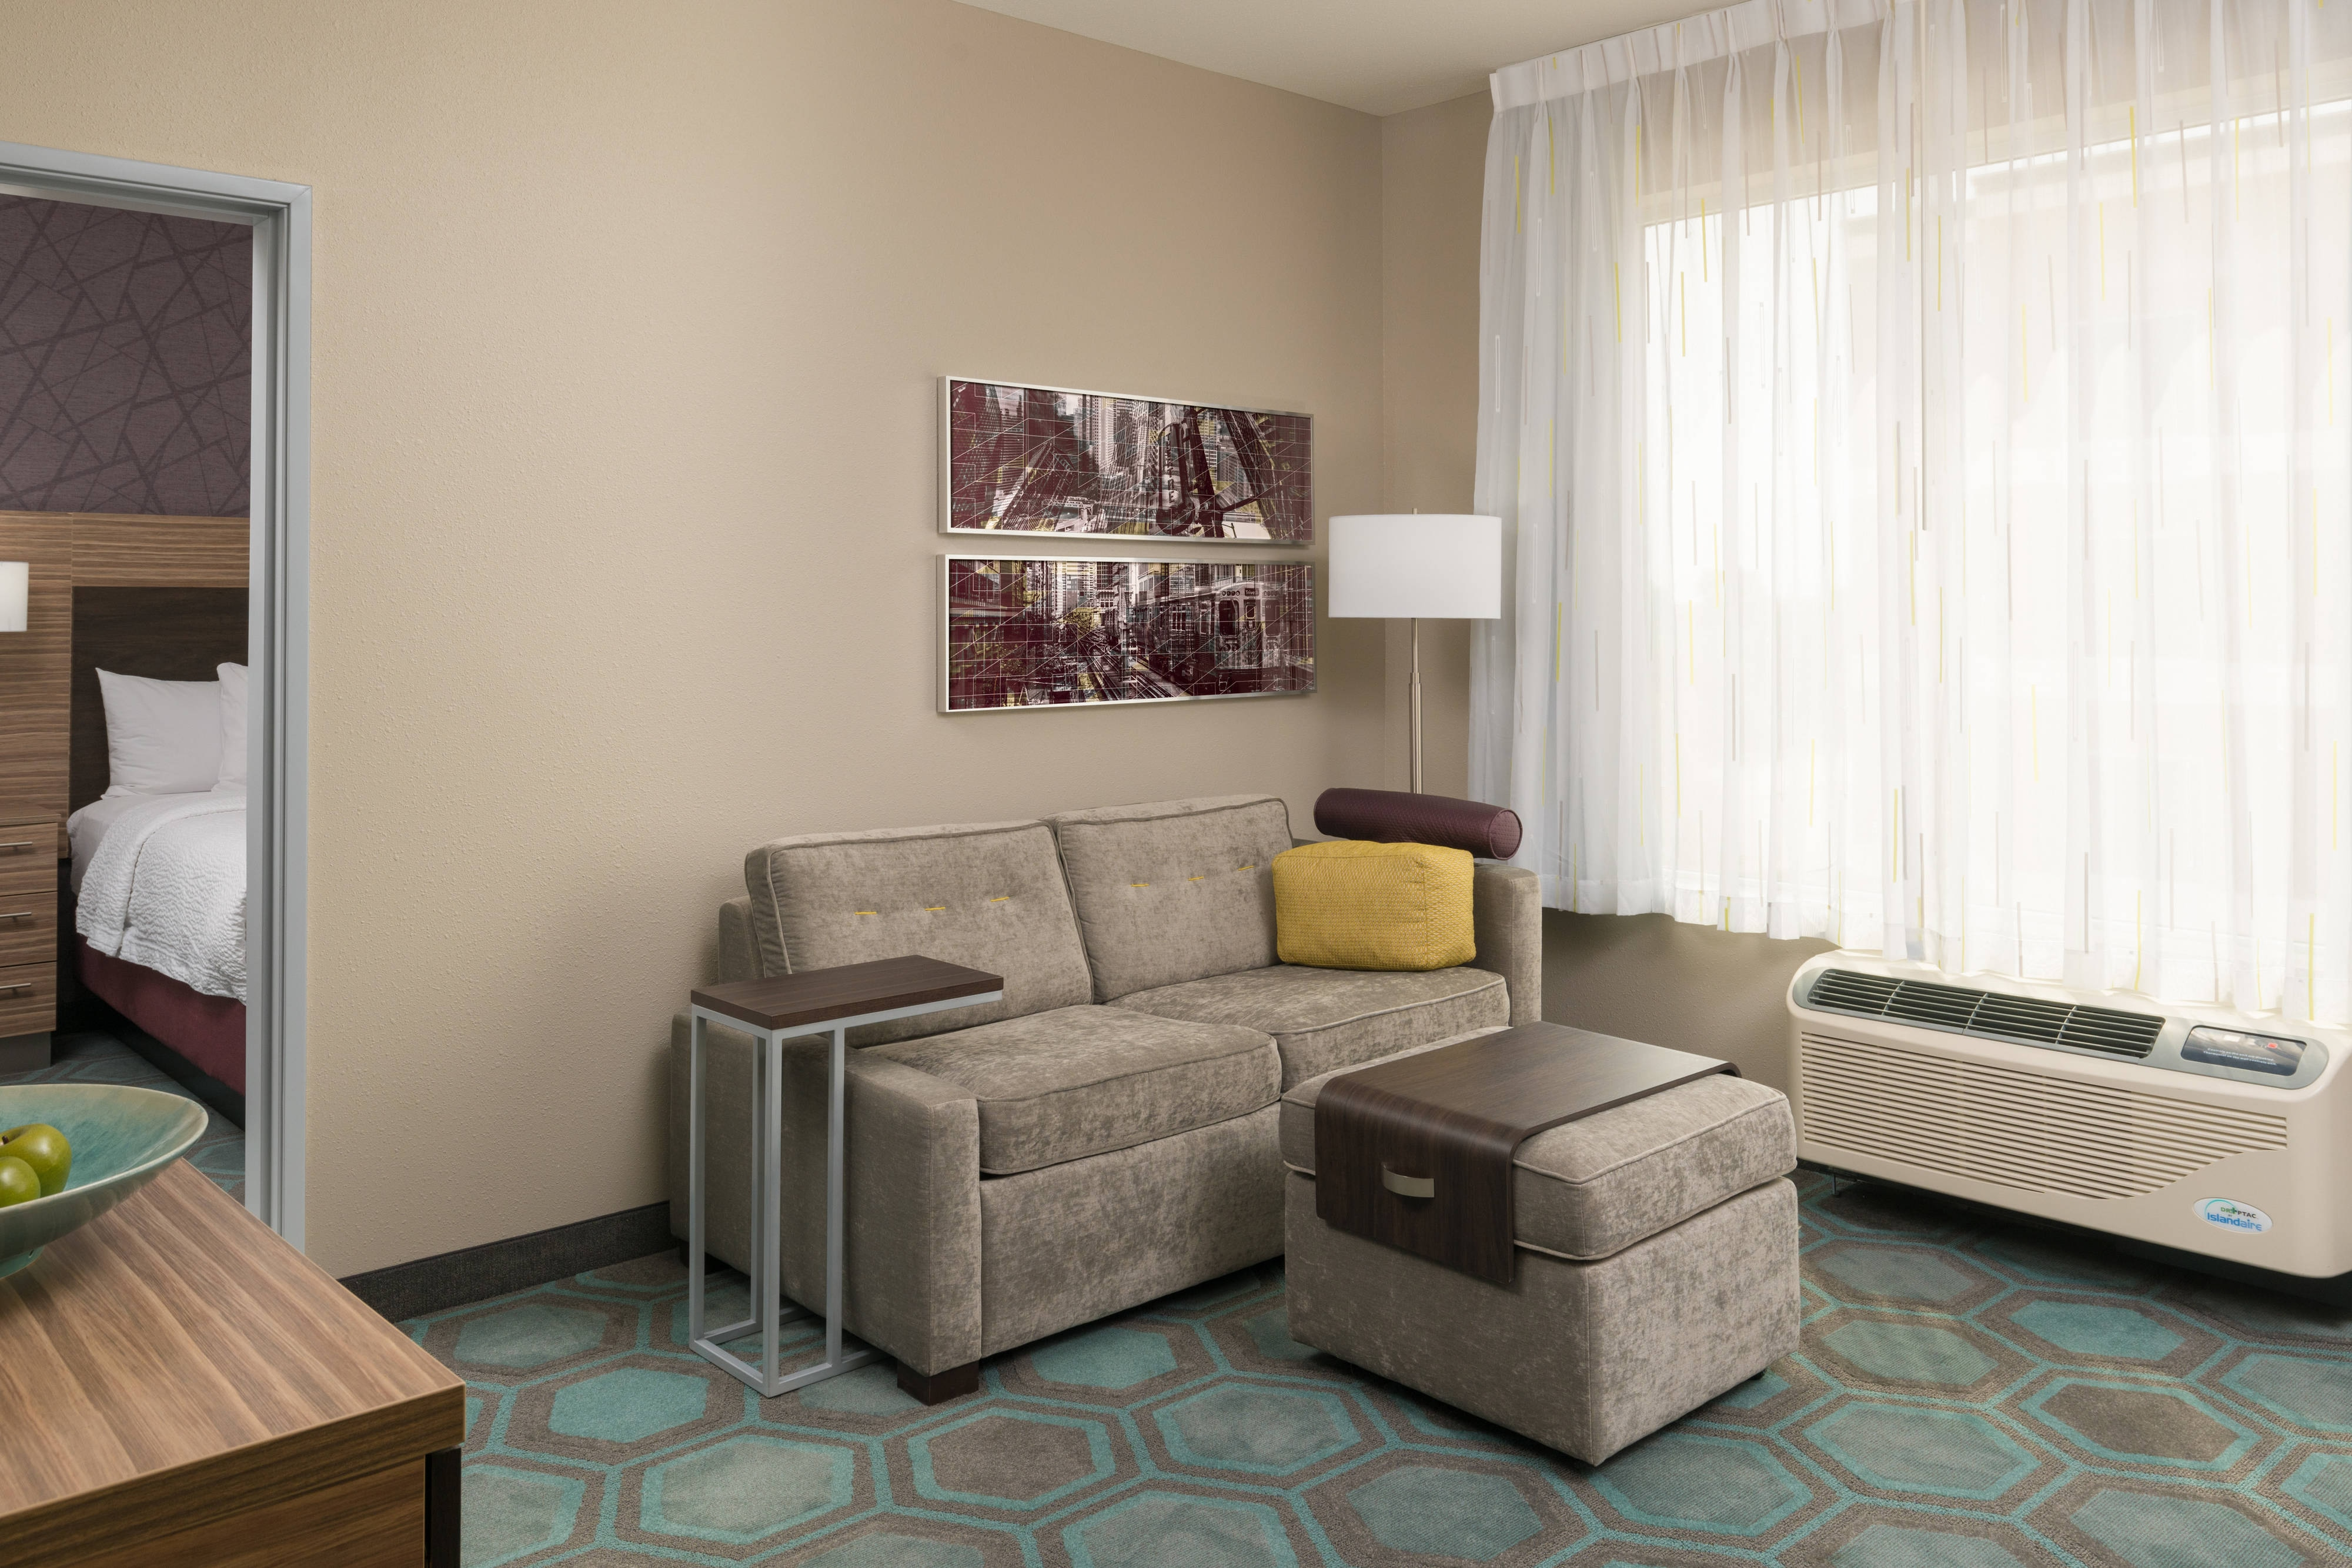 Long term hotel in schaumburg towneplace suites chicago - 2 bedroom suites in schaumburg il ...